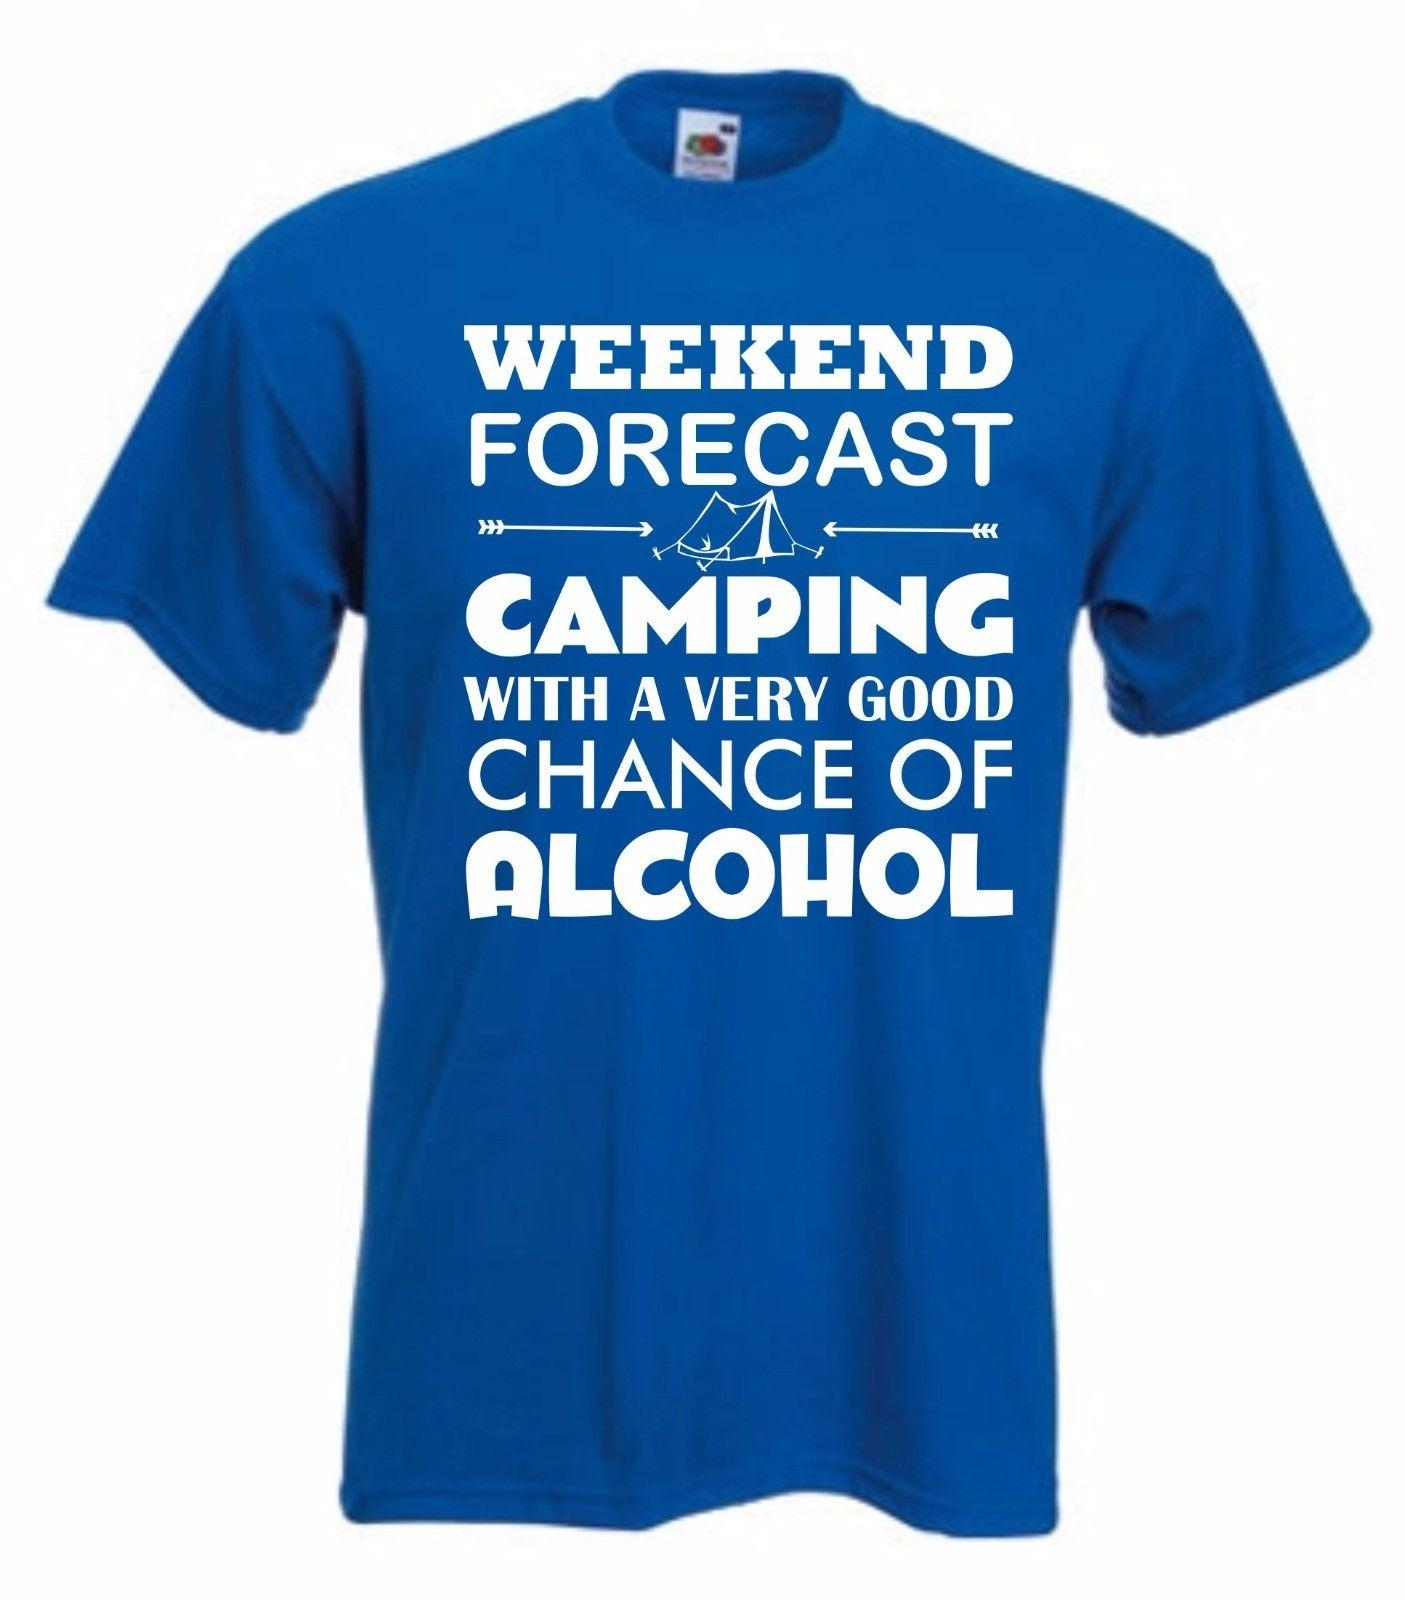 8a5425cb3 Tent Wholesale Discount T Shirt Funny Tshirt Weekend T Shirt Wine Beer S  Xxl New T Shirts Funny Tops Tee New Unisex Funny Topsfree Shipng Shirts For  Men ...